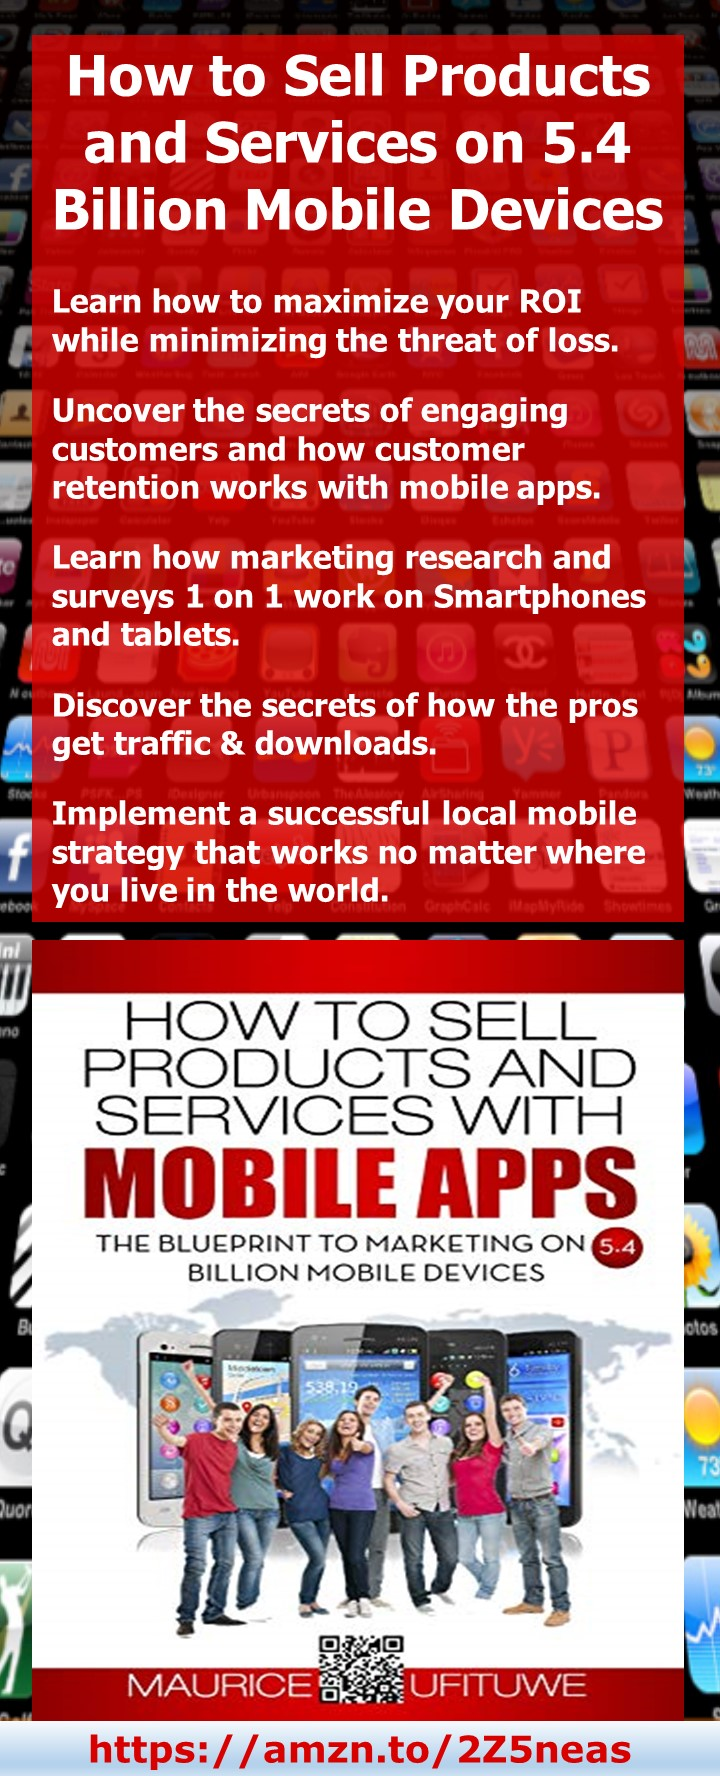 How to Sell Products and Services with Mobile Apps: The Blueprint to Marketing on 5.4 Billion Mobile Devices